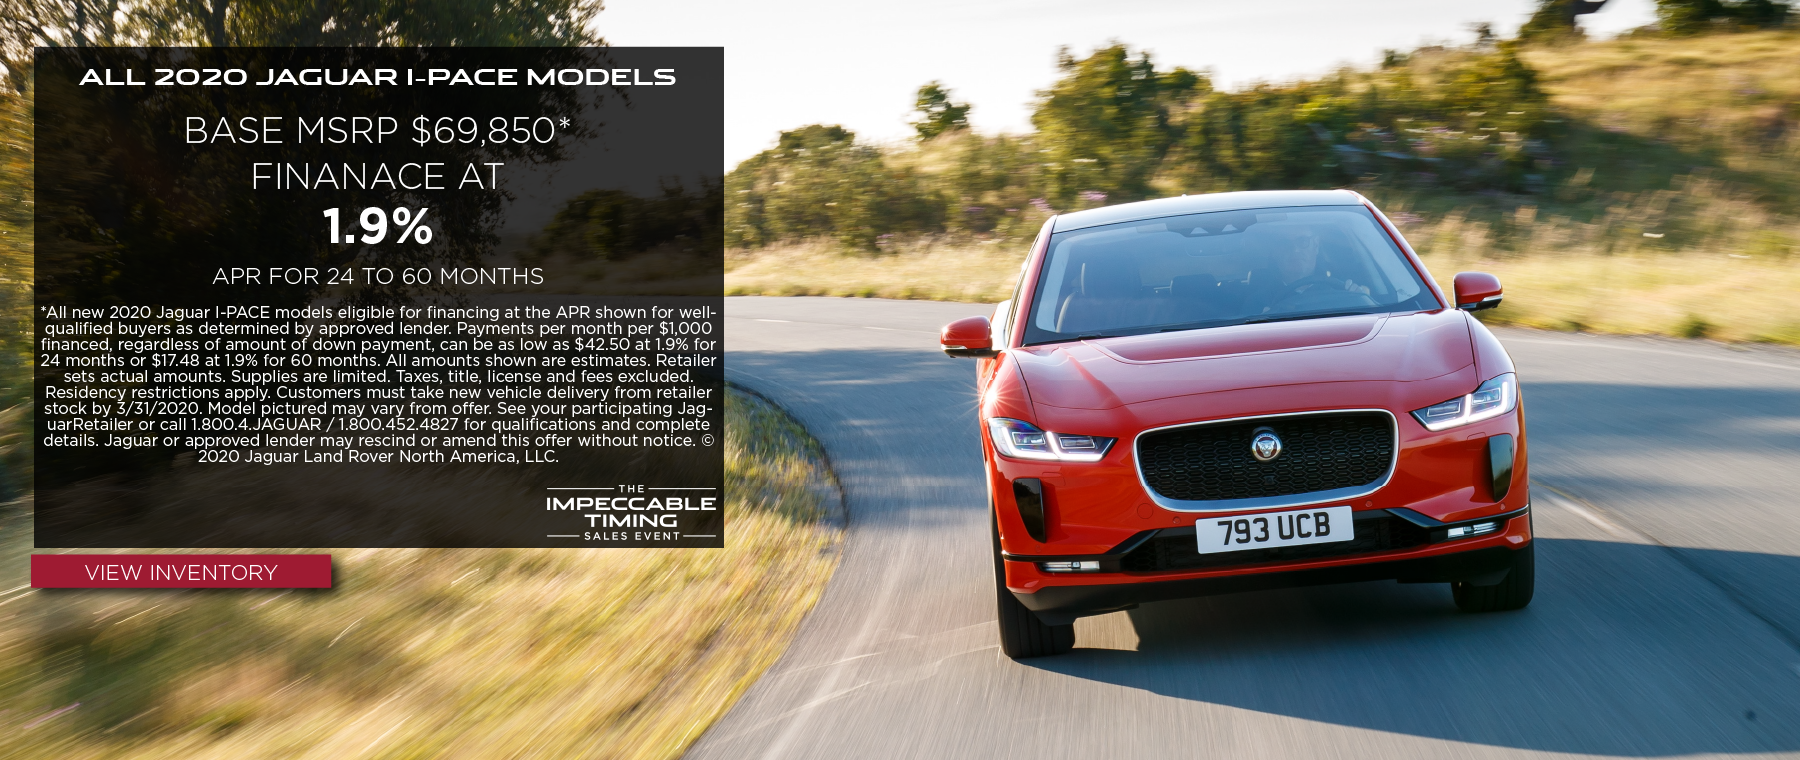 ALL 2020 JAGUAR I-PACE MODELS. BASE MSRP FROM $69,850. FINANCE AT 1.9% APR FOR 24 TO 60 MONTHS. OFFER ENDS 3/31/2020. VIEW INVENTORY. RED JAGUAR I-PACE DRIVING THROUGH COUNTRYSIDE.